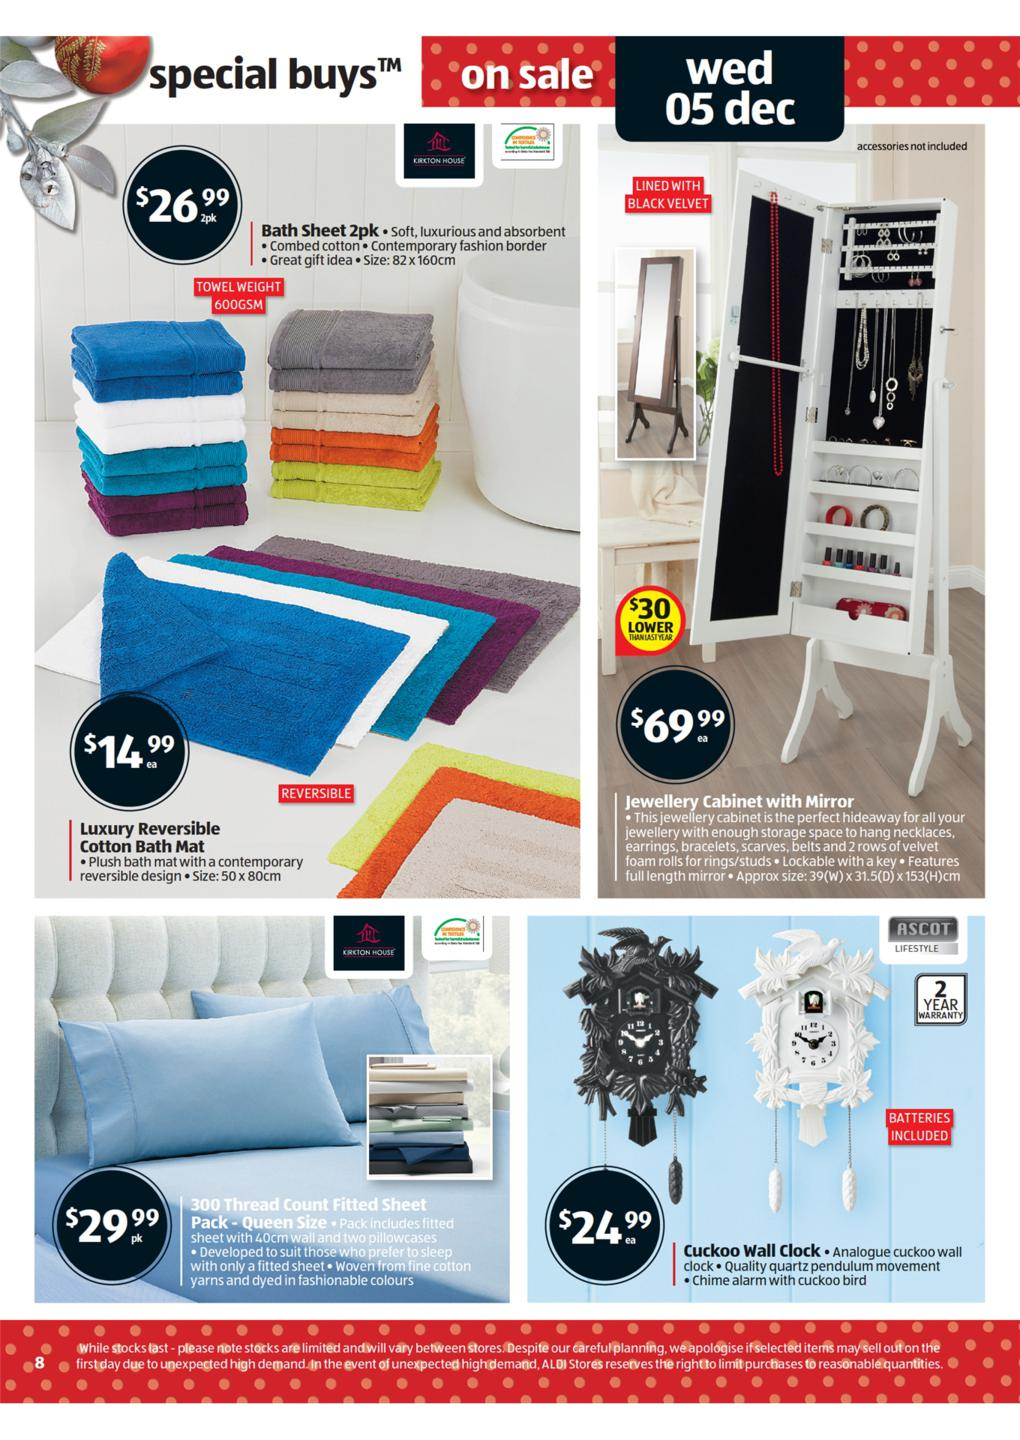 ALDI Catalogue  Special Buys Wk 49 Page 8